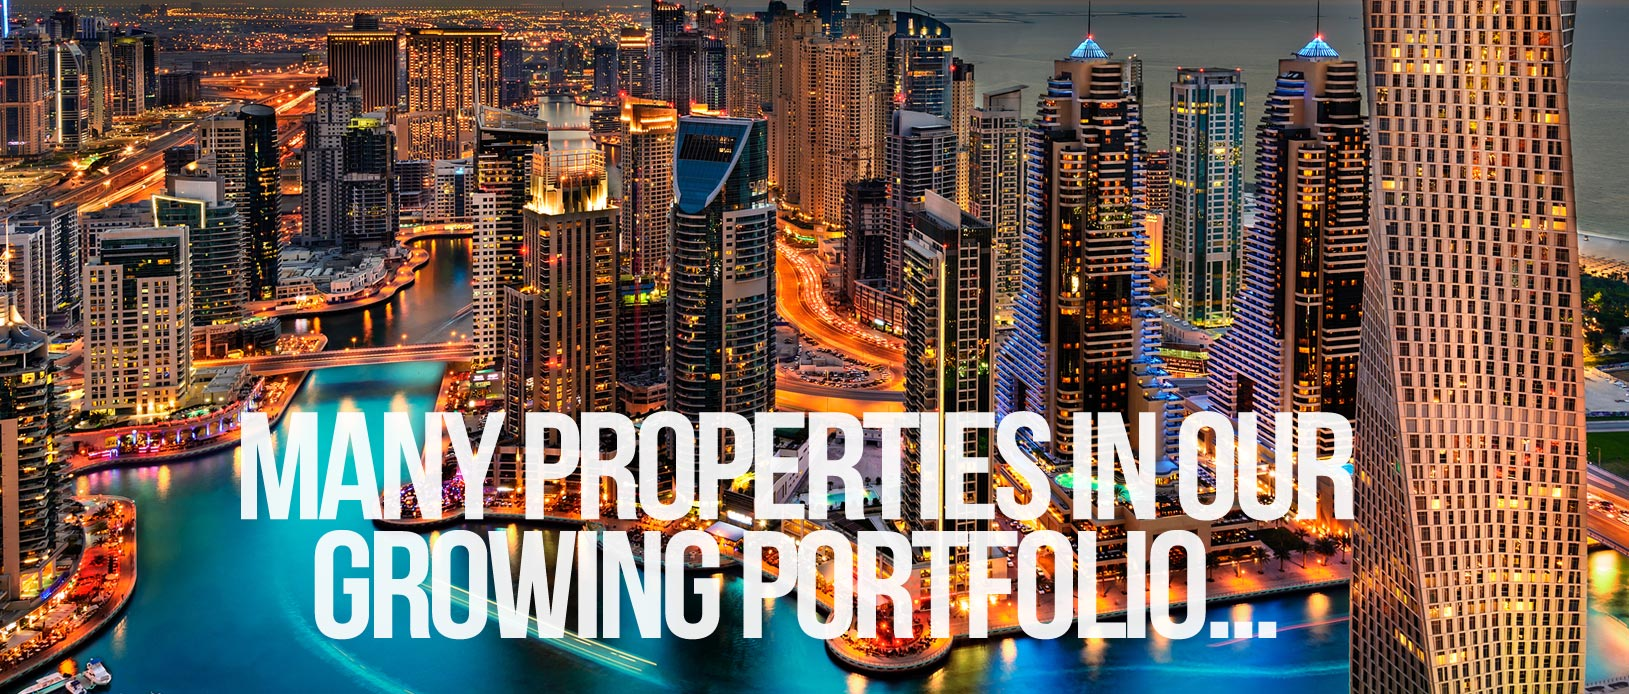 Many properties in our growing portfolio